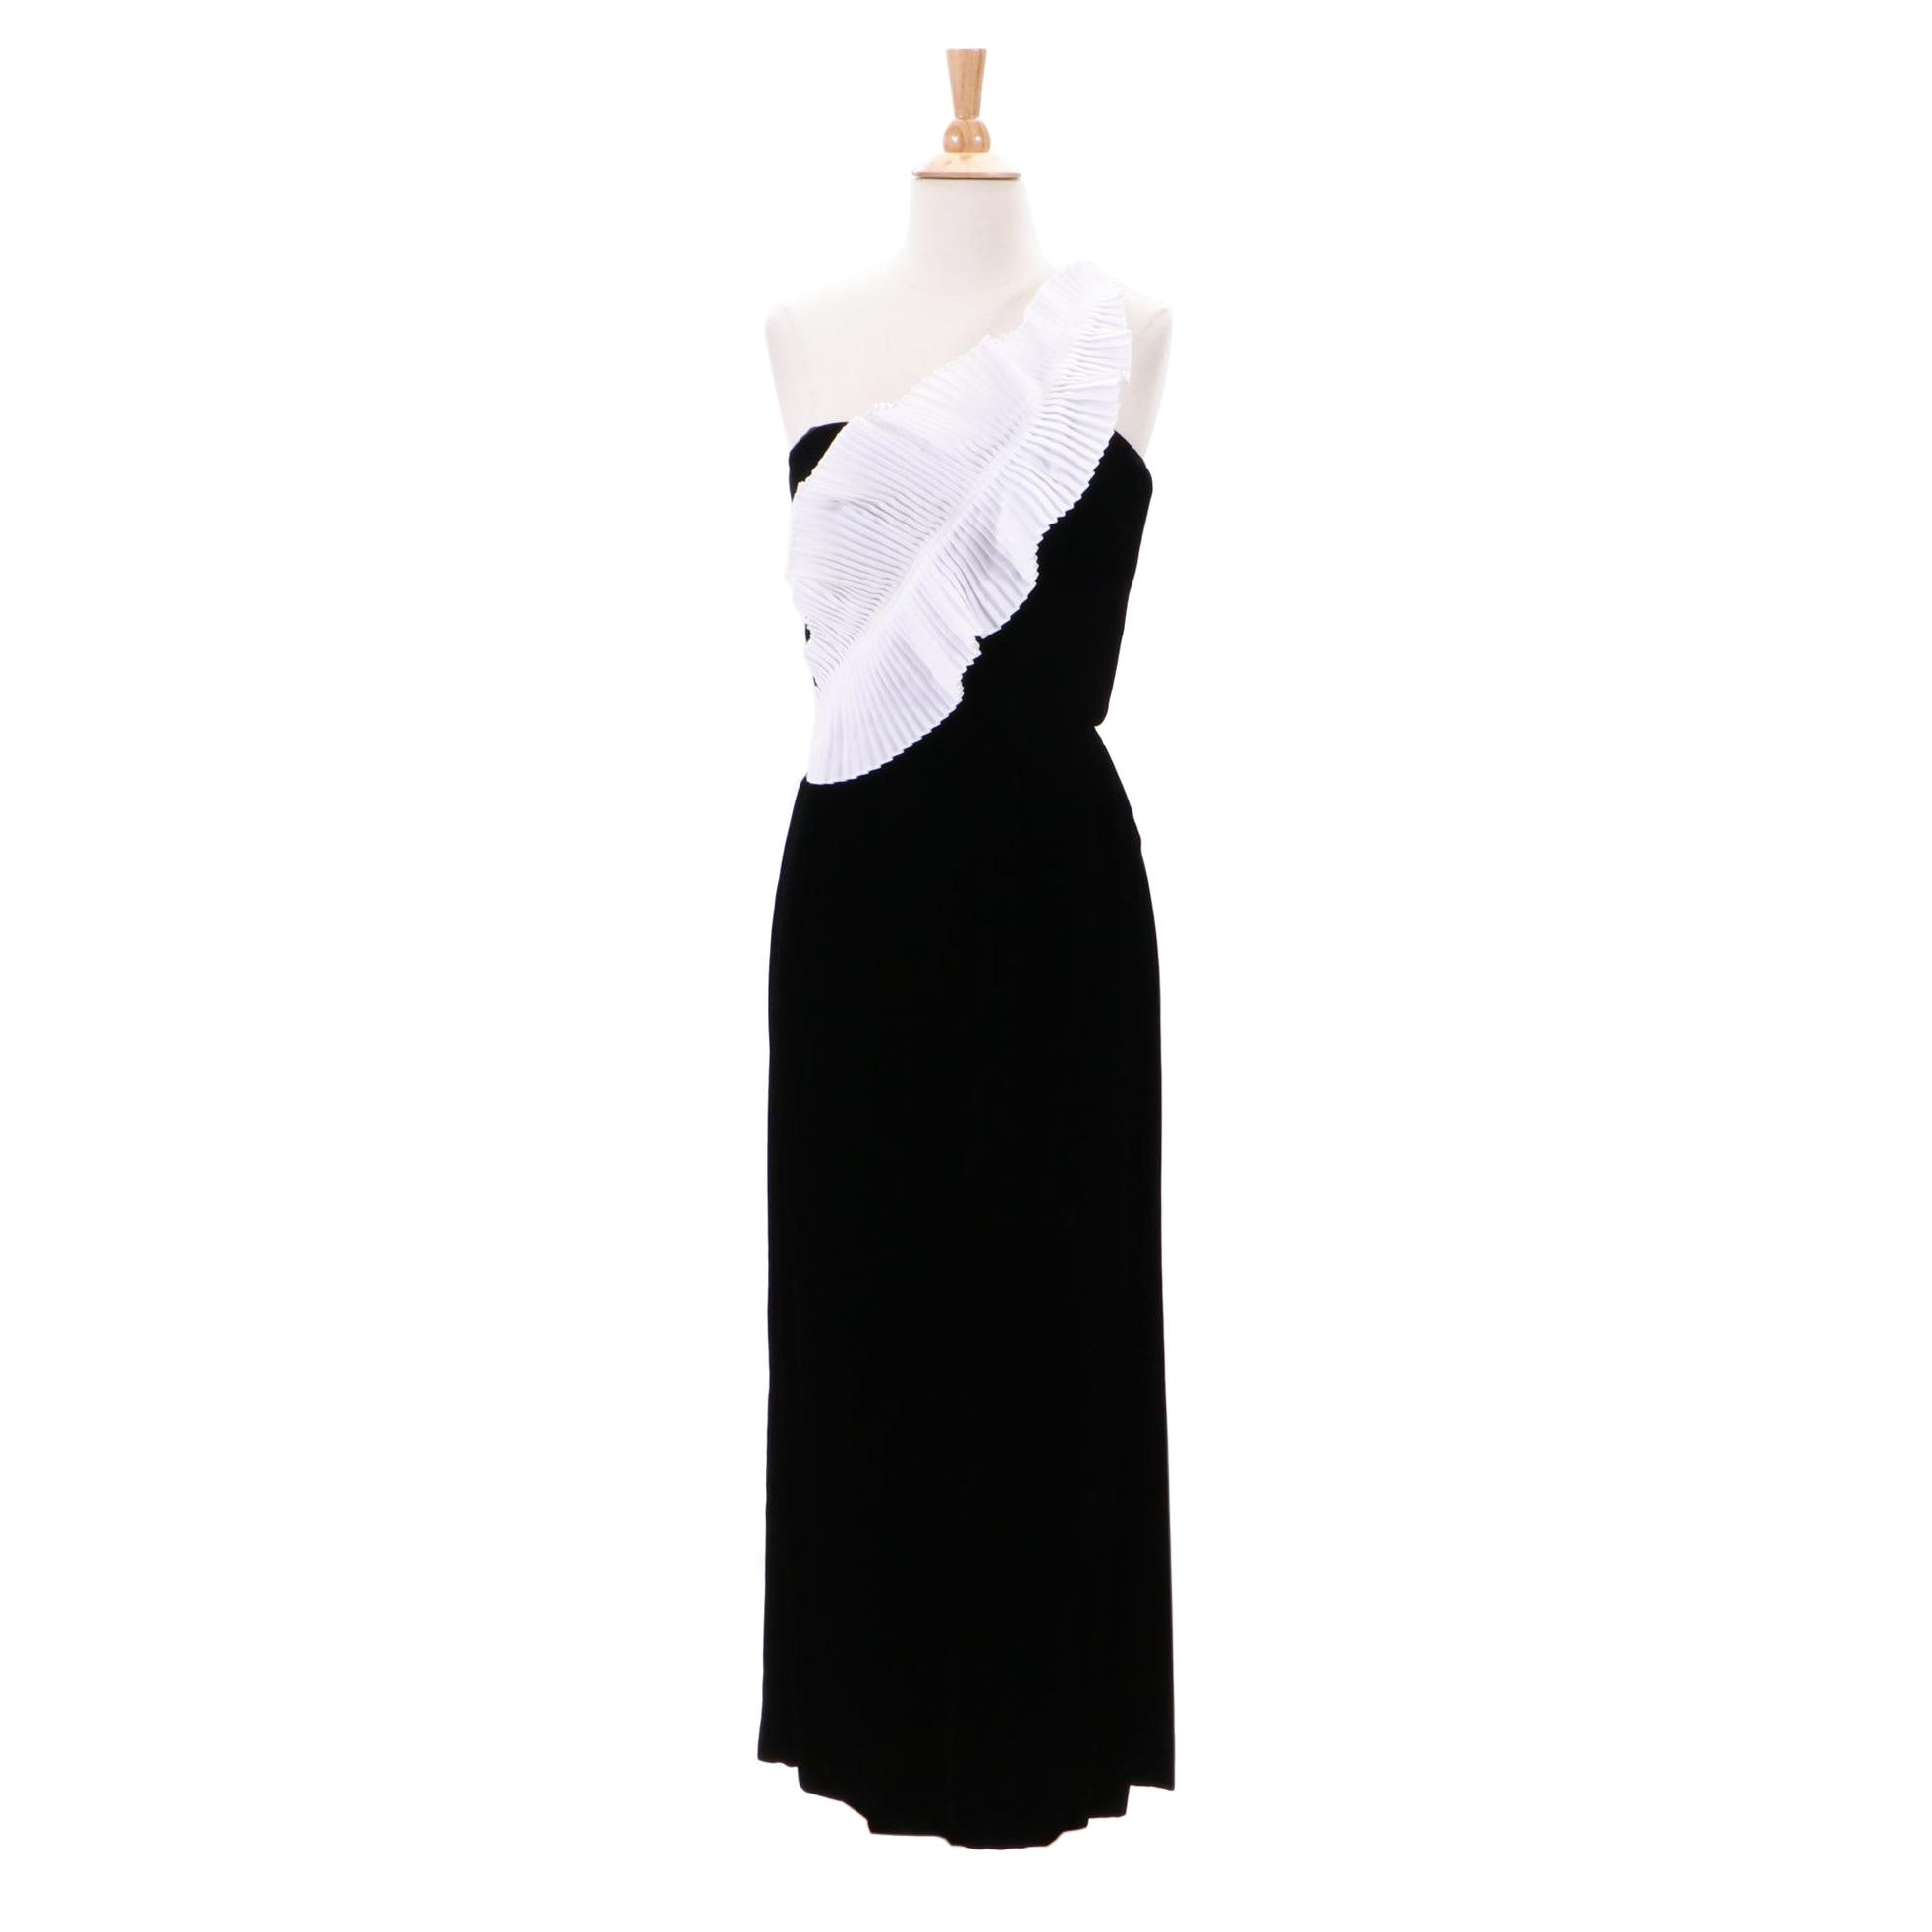 Vintage Victor Costa Black Velvet One-Shoulder Evening Dress from Gidding Jenny